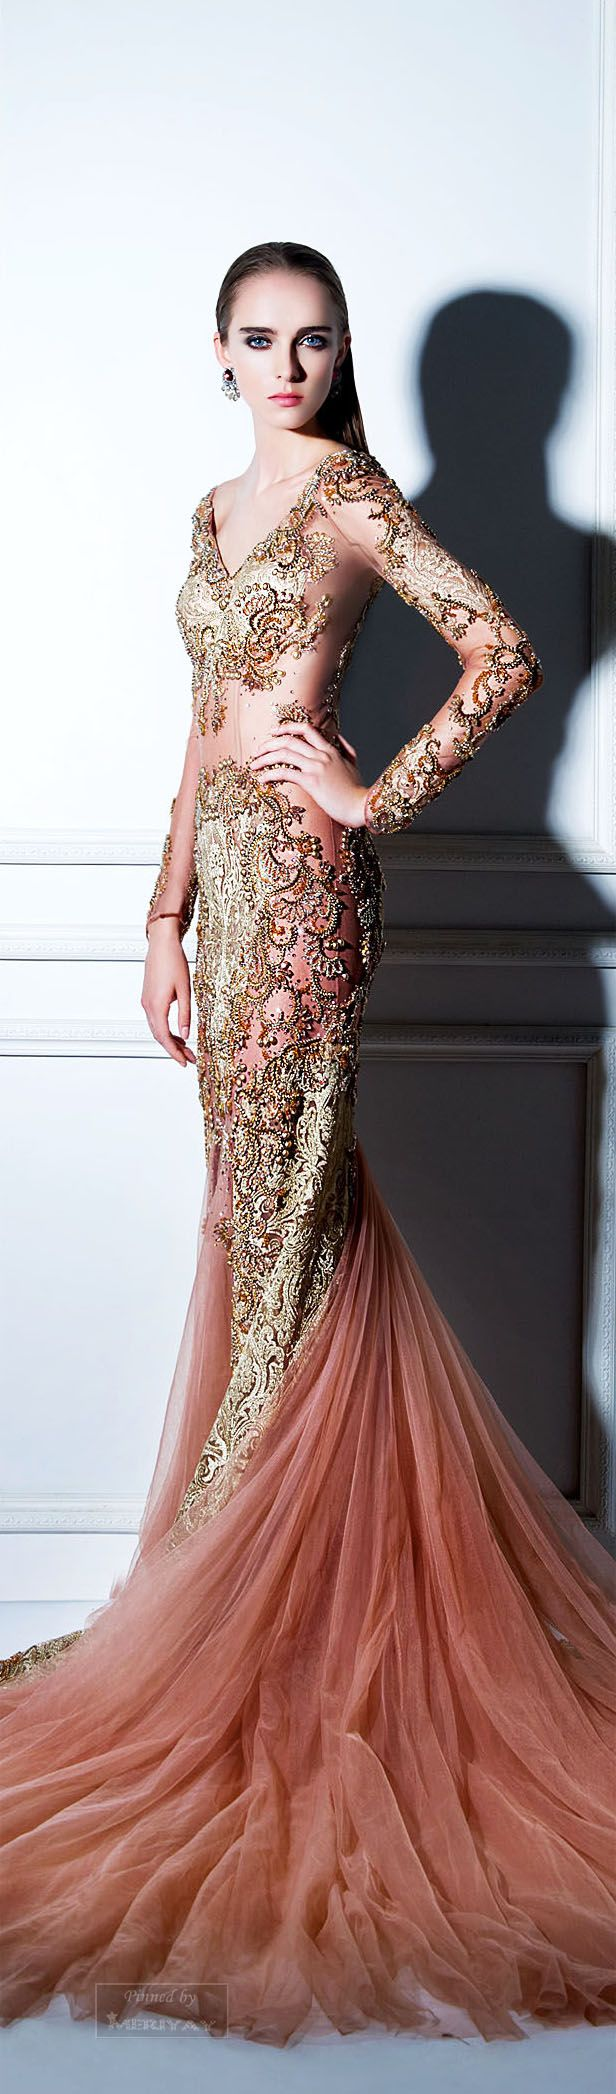 Dany Tabet.Fall-winter.2014/2015.